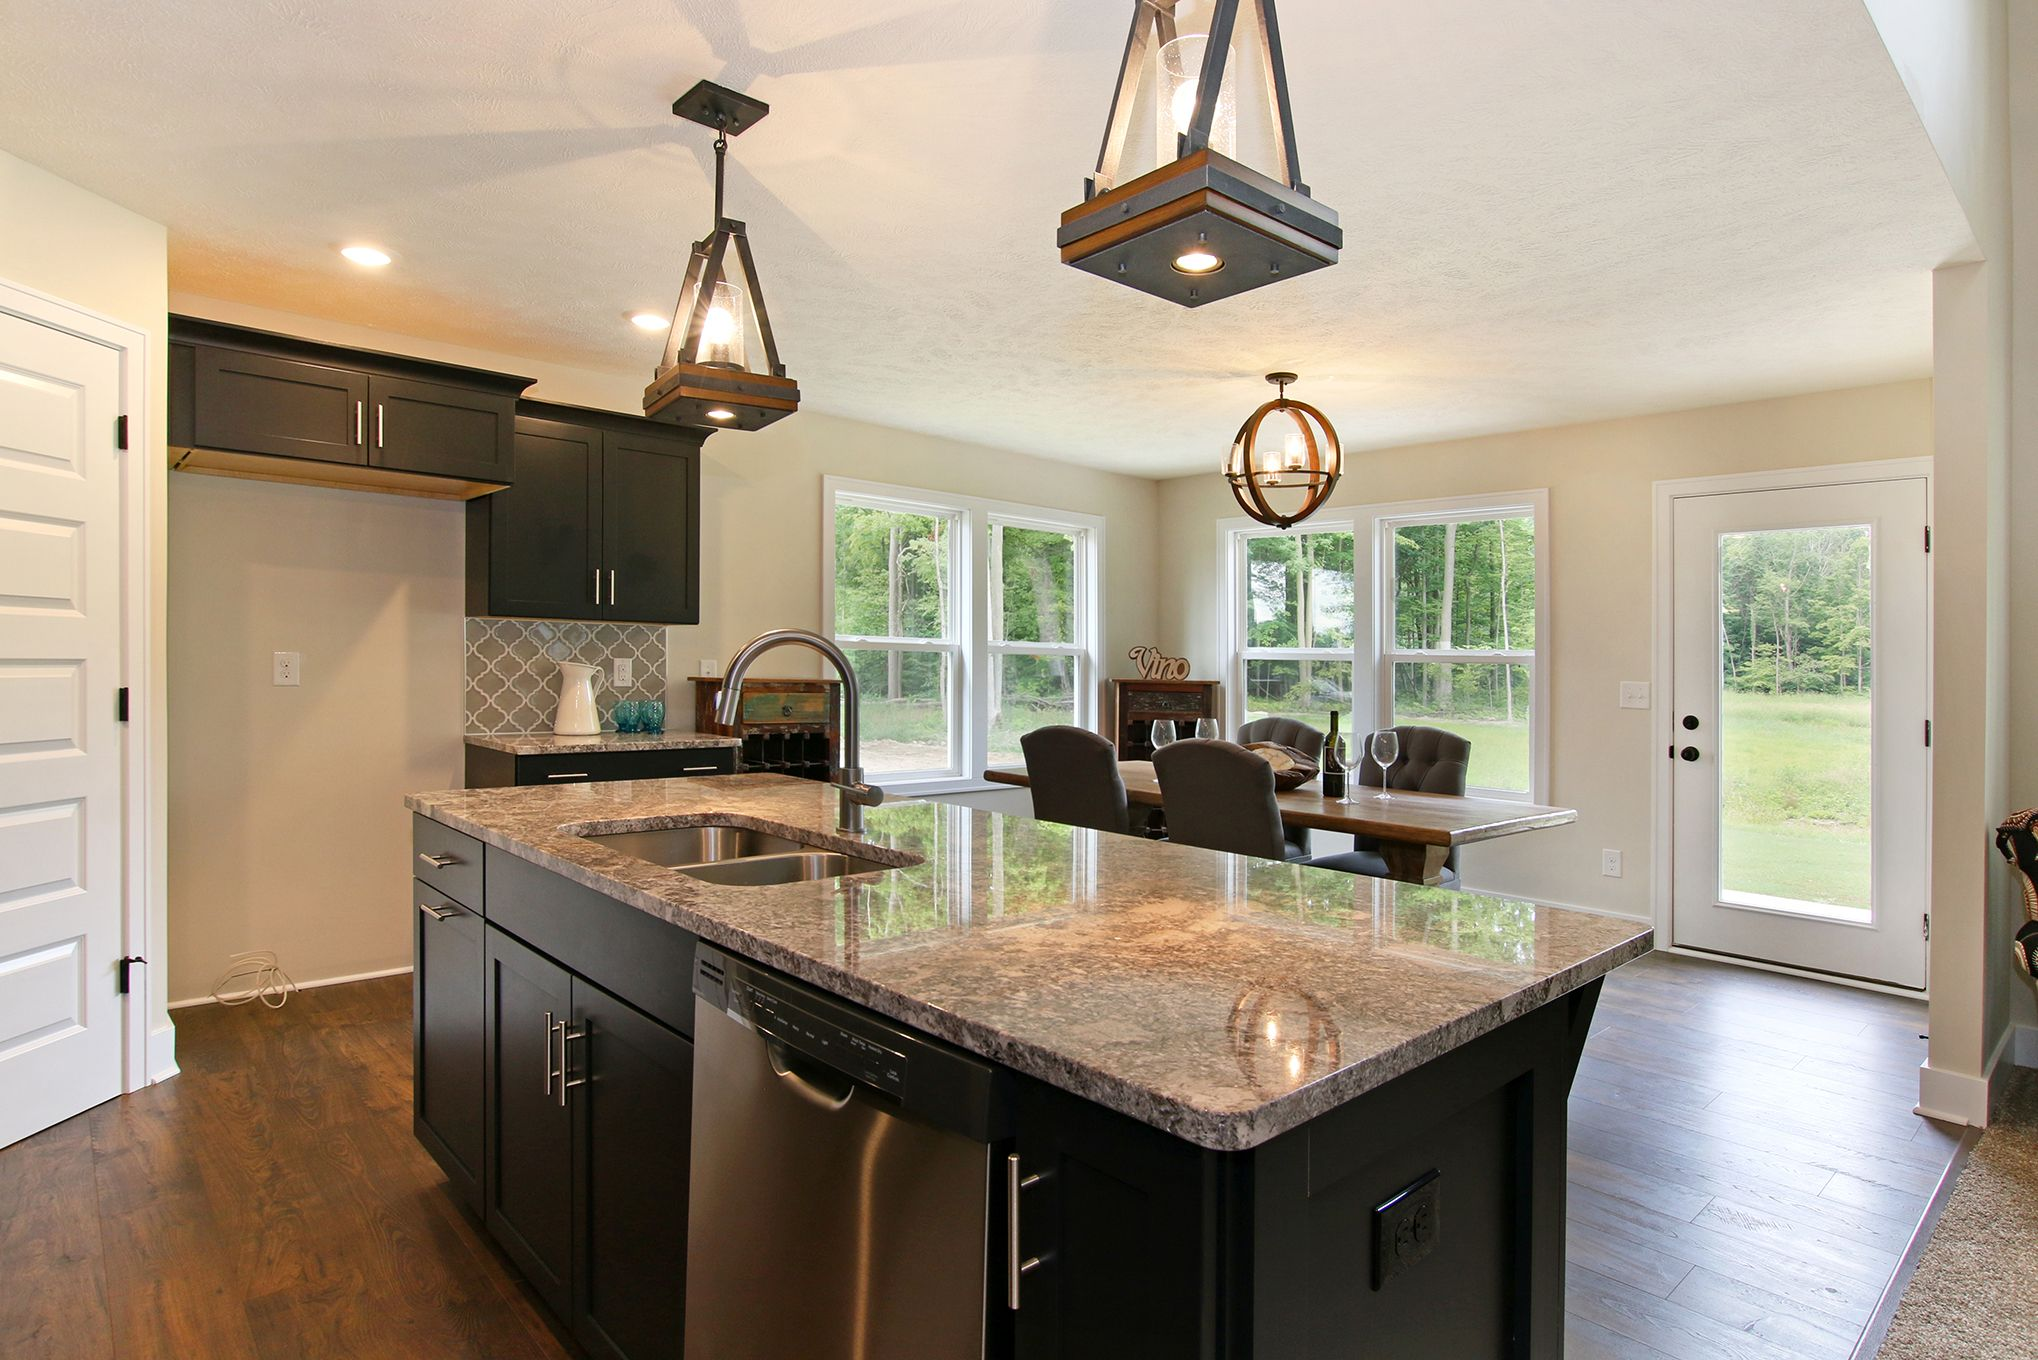 Kitchen featured in The Hadley By Eastbrook Homes Inc. in Lansing, MI